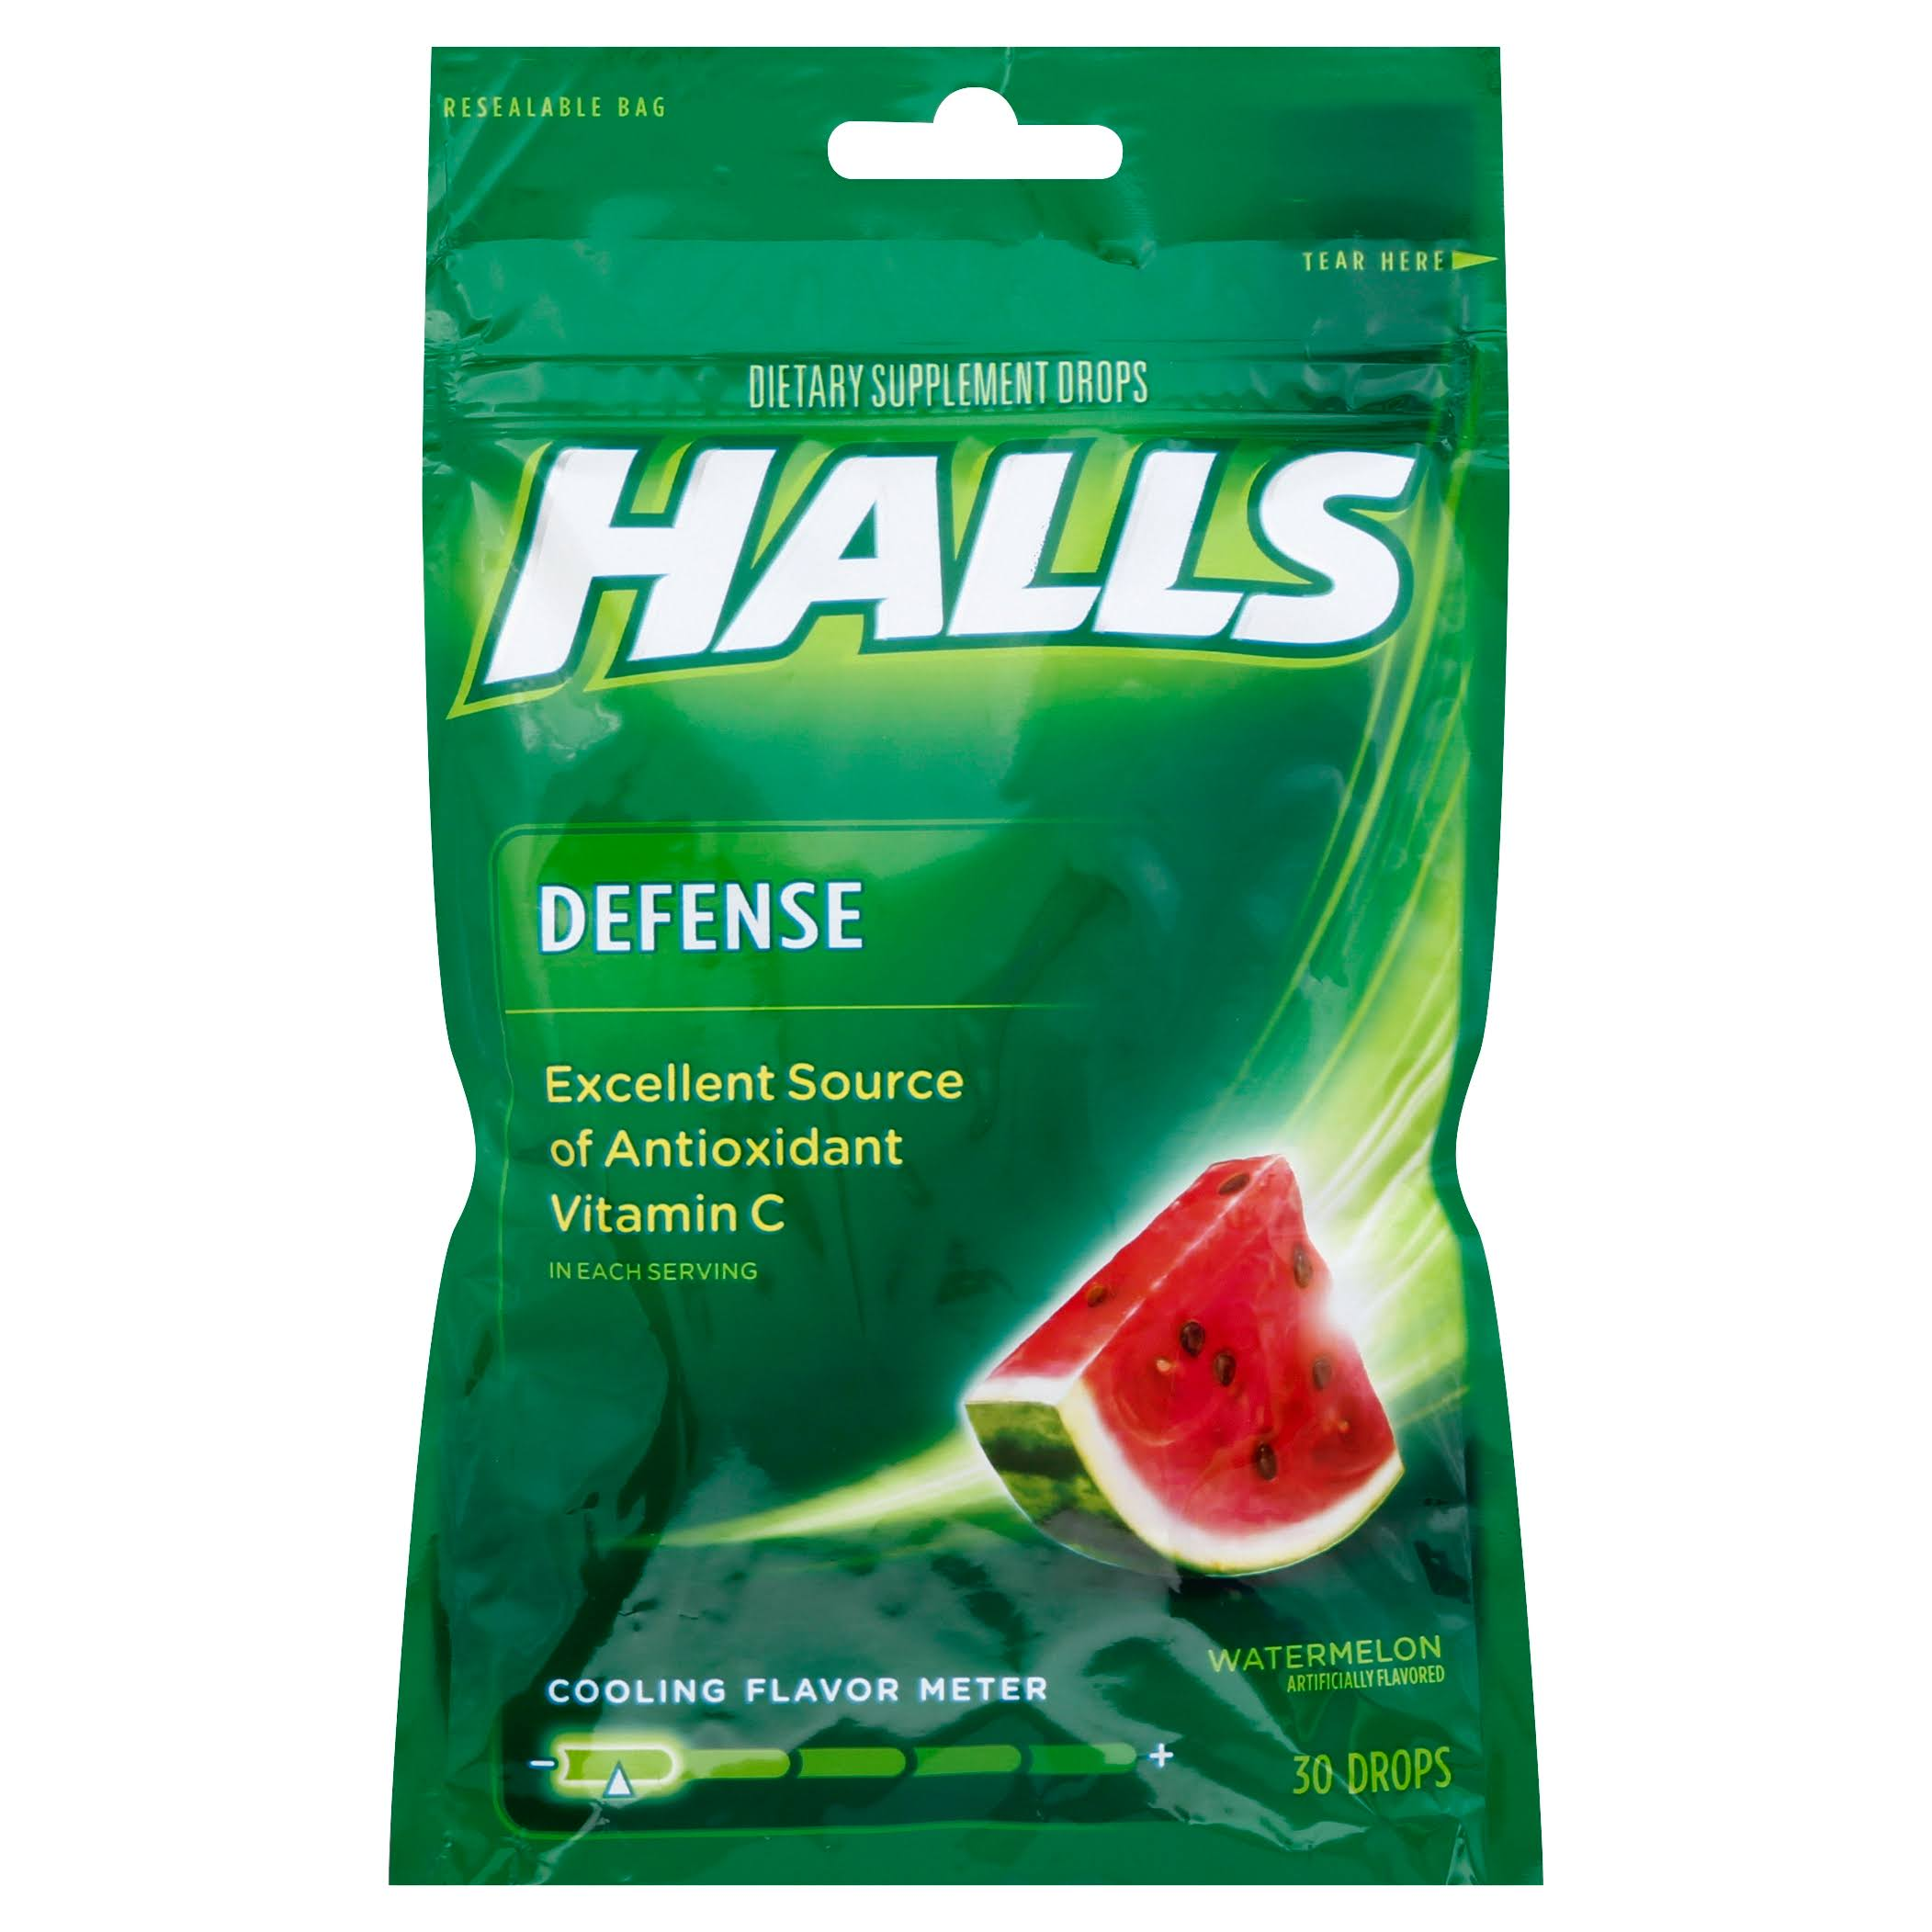 Halls Defence Vitamin C Drops - Watermelon, 30ct